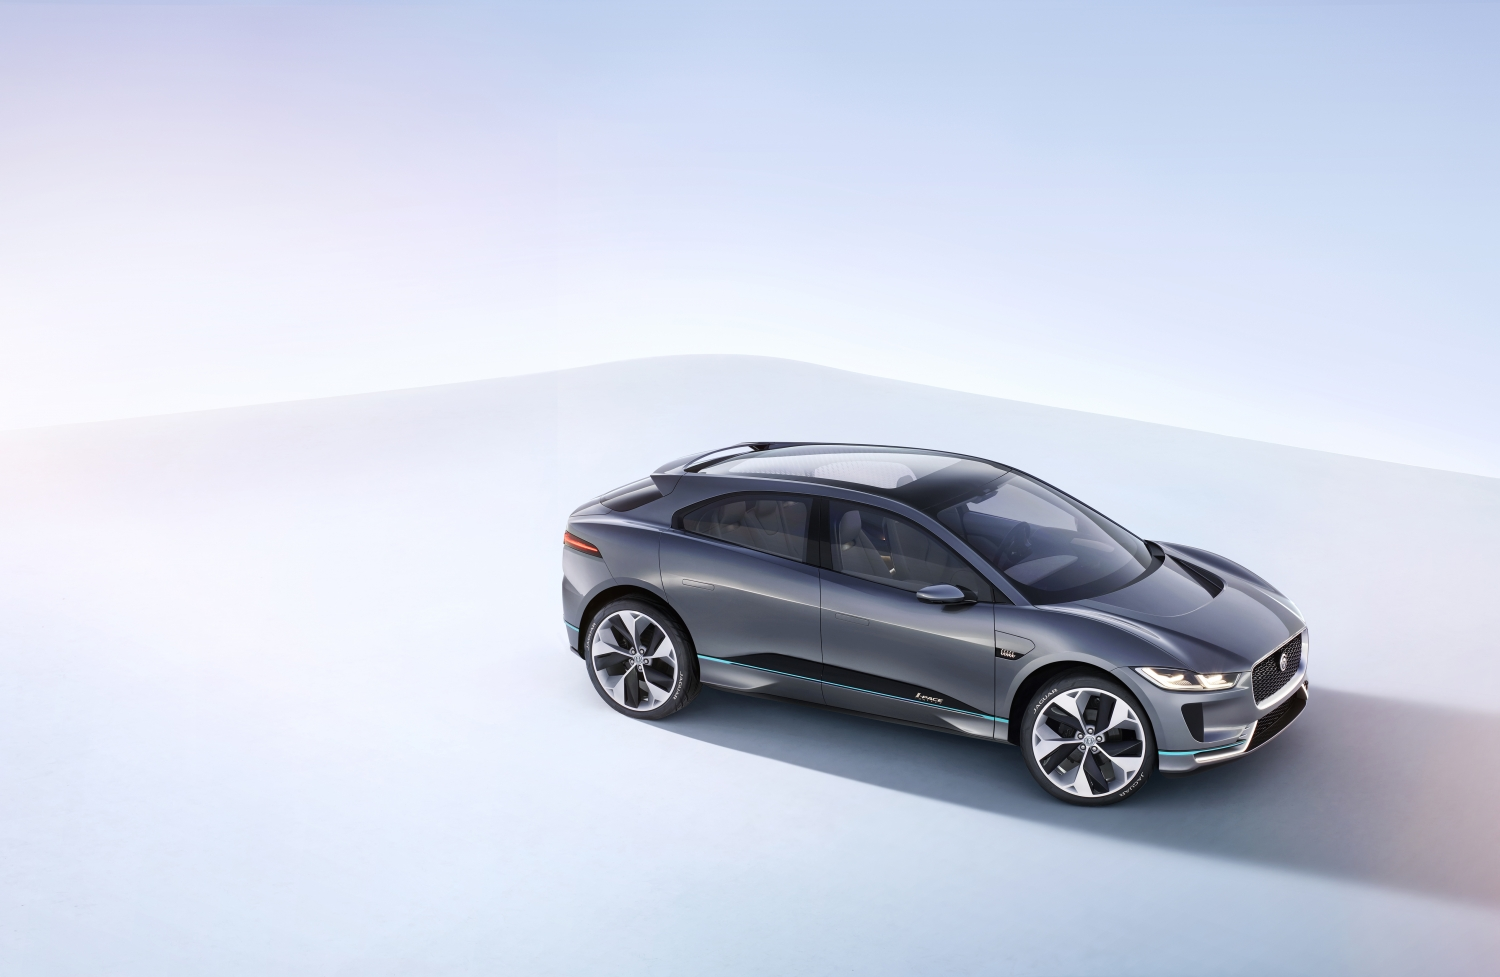 JAGUAR REVEALS THE I-PACE CONCEPT - STUDIO EXTERIOR